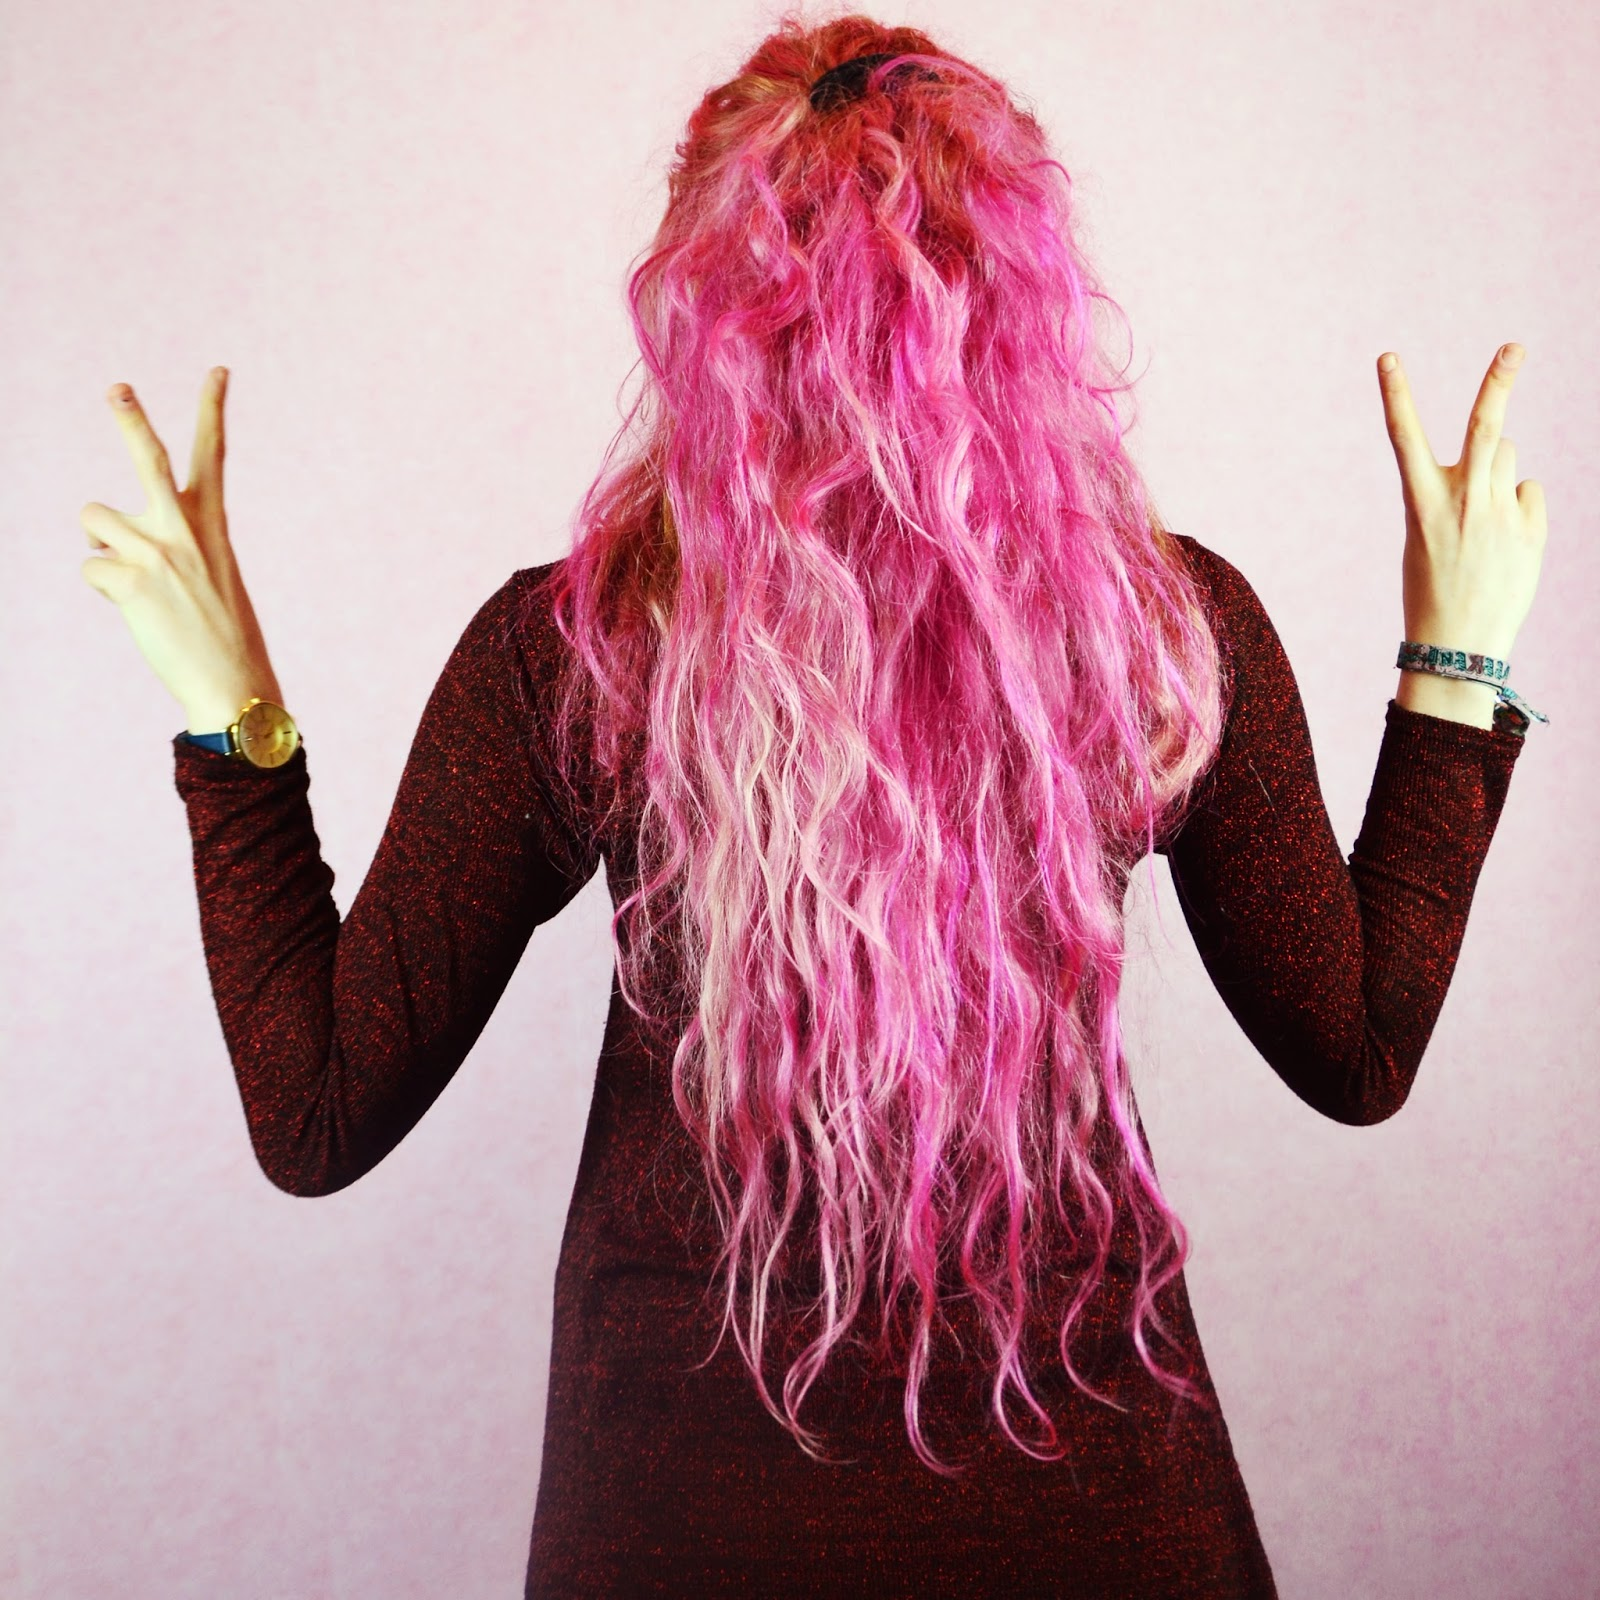 Stephi LaReine // Liverpool UK Lifestyle curly pink haired blogger // Things that happen with bright coloured hair